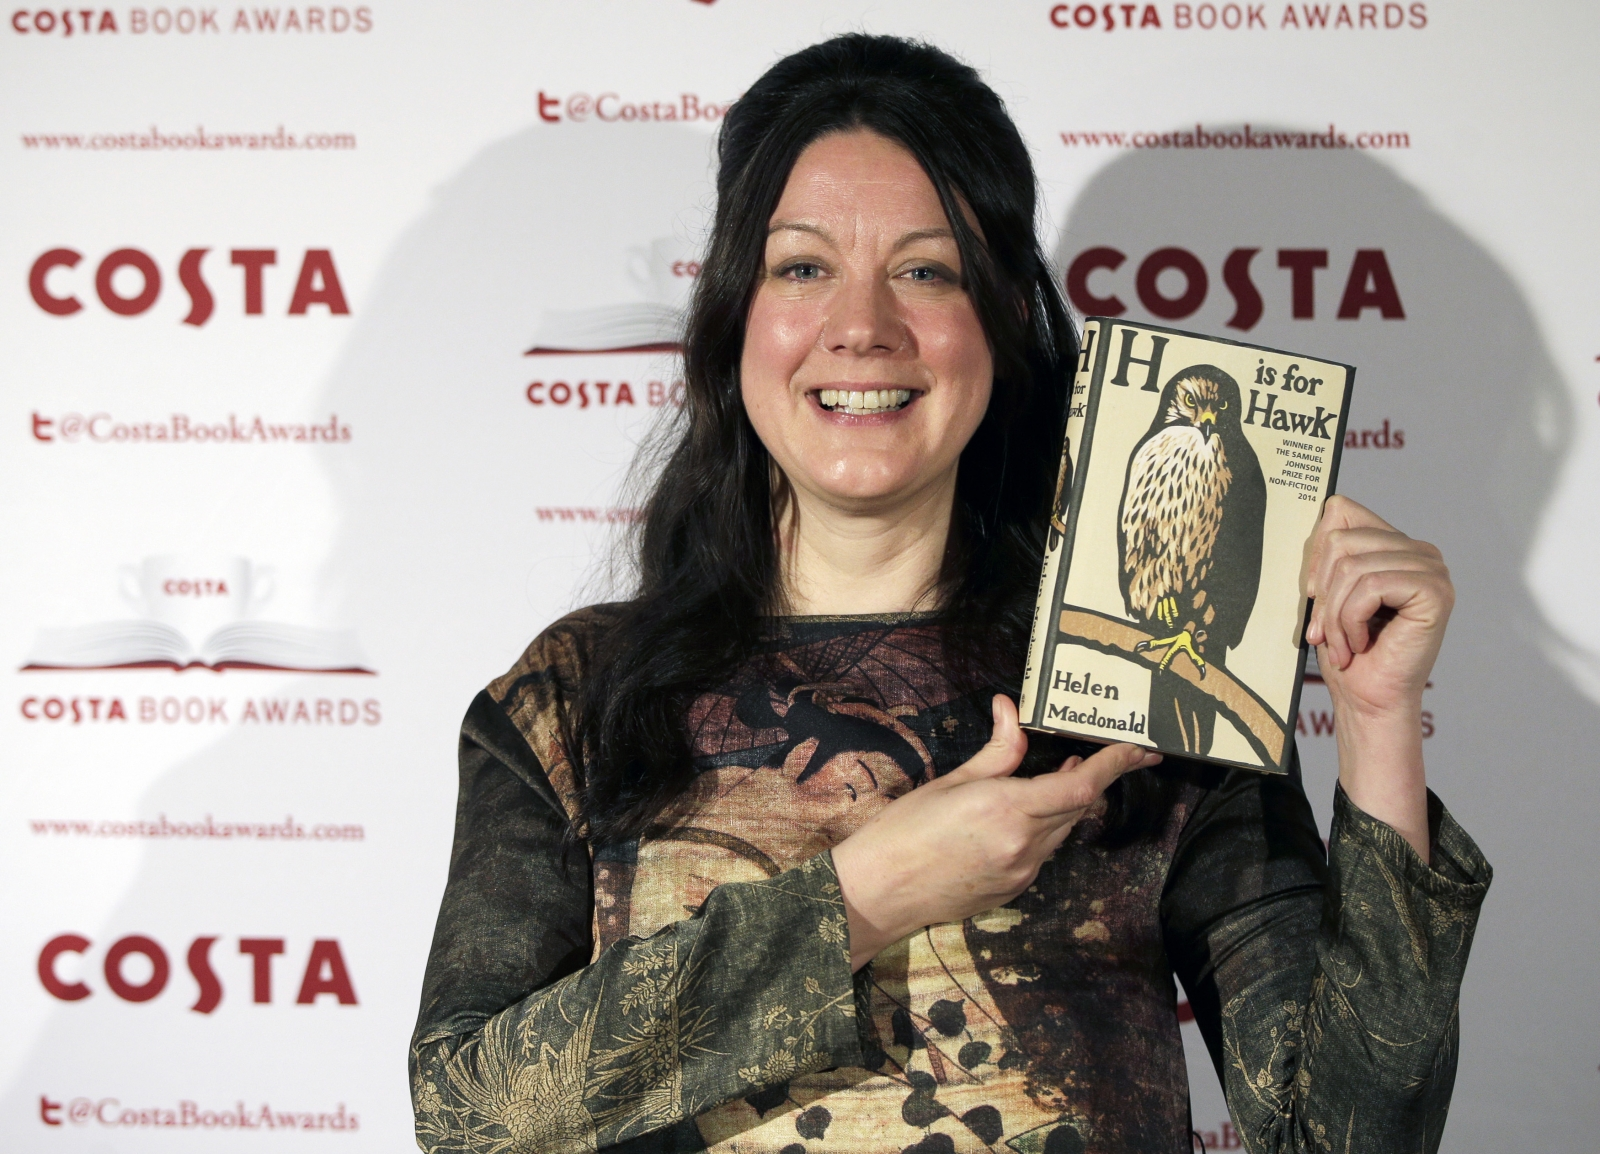 """Helen MacDonald, nominee in the 2014 Costa Book Awards and winner of the Costa Biography Award category, poses with her book """"H is for hawk"""""""